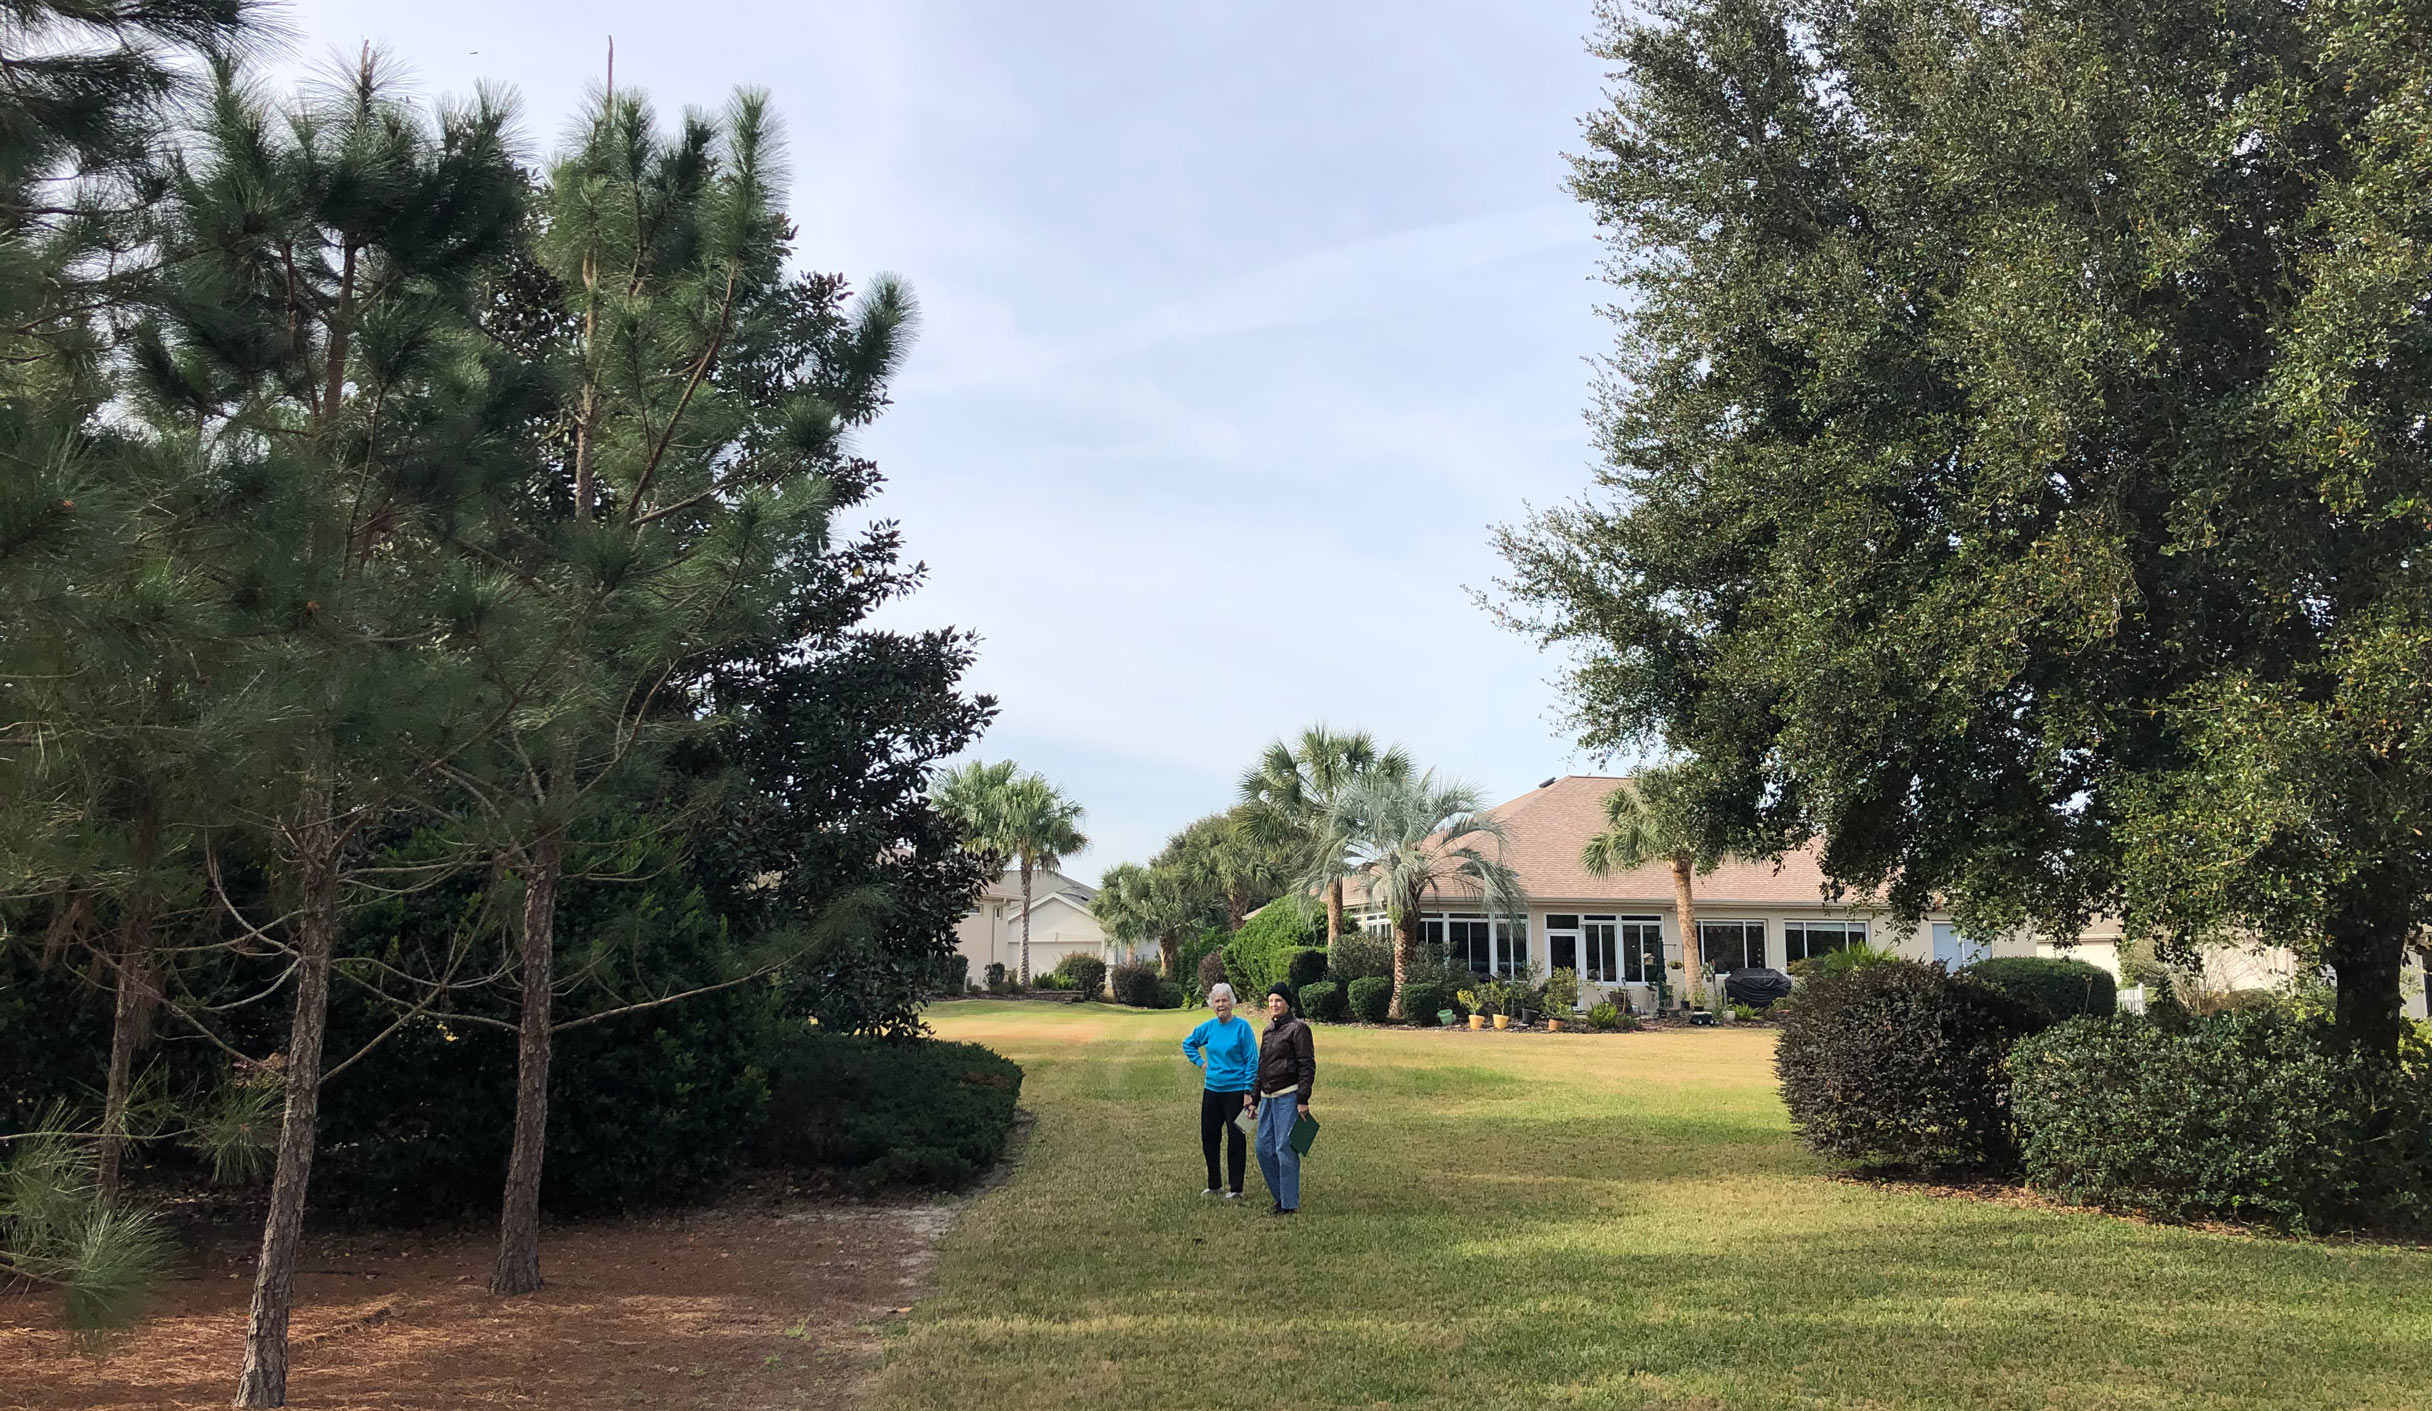 Two people standing in an open yard